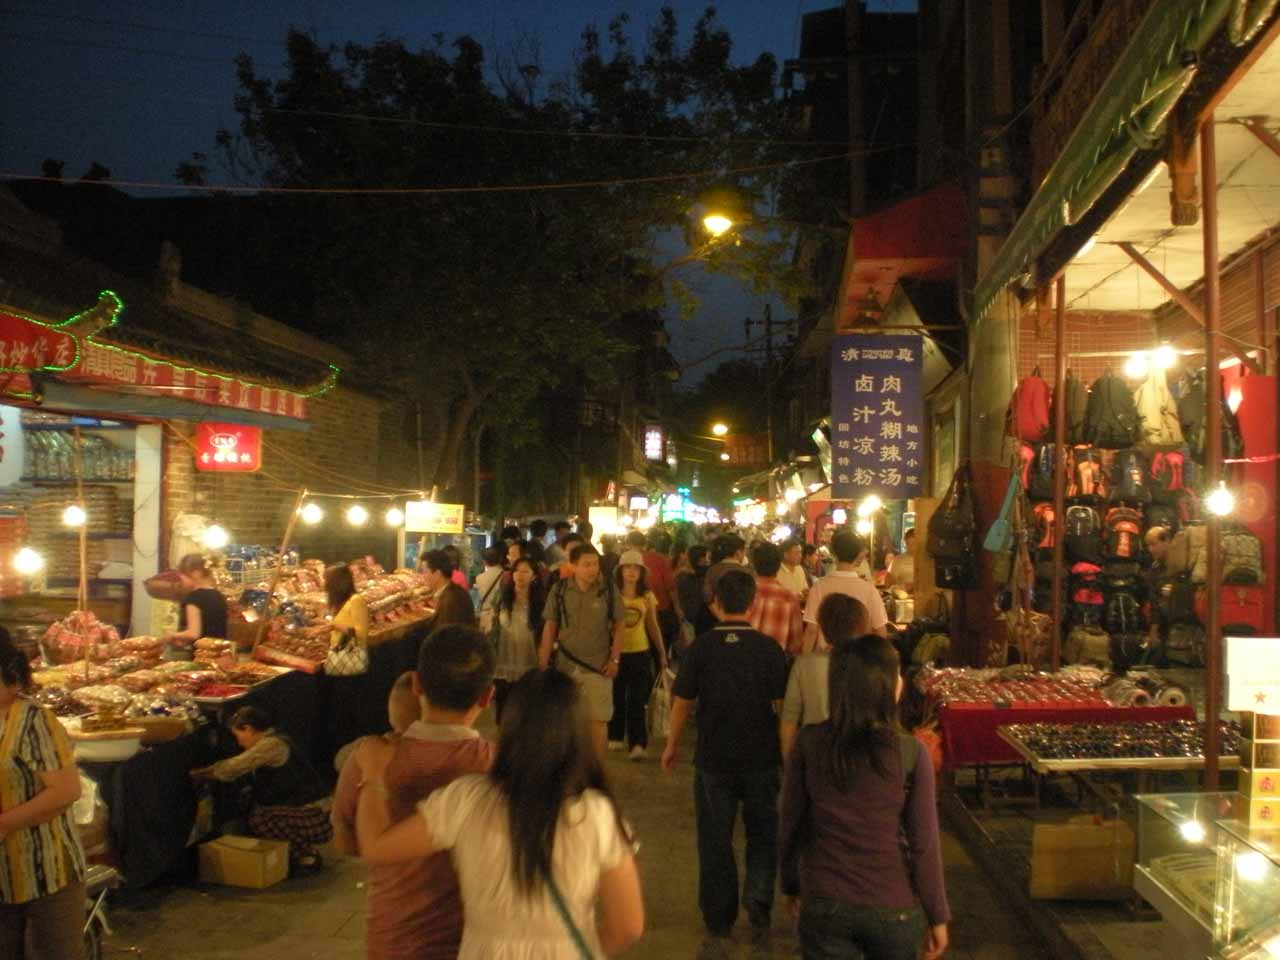 The night markets in Xi'an were also really neat to experience